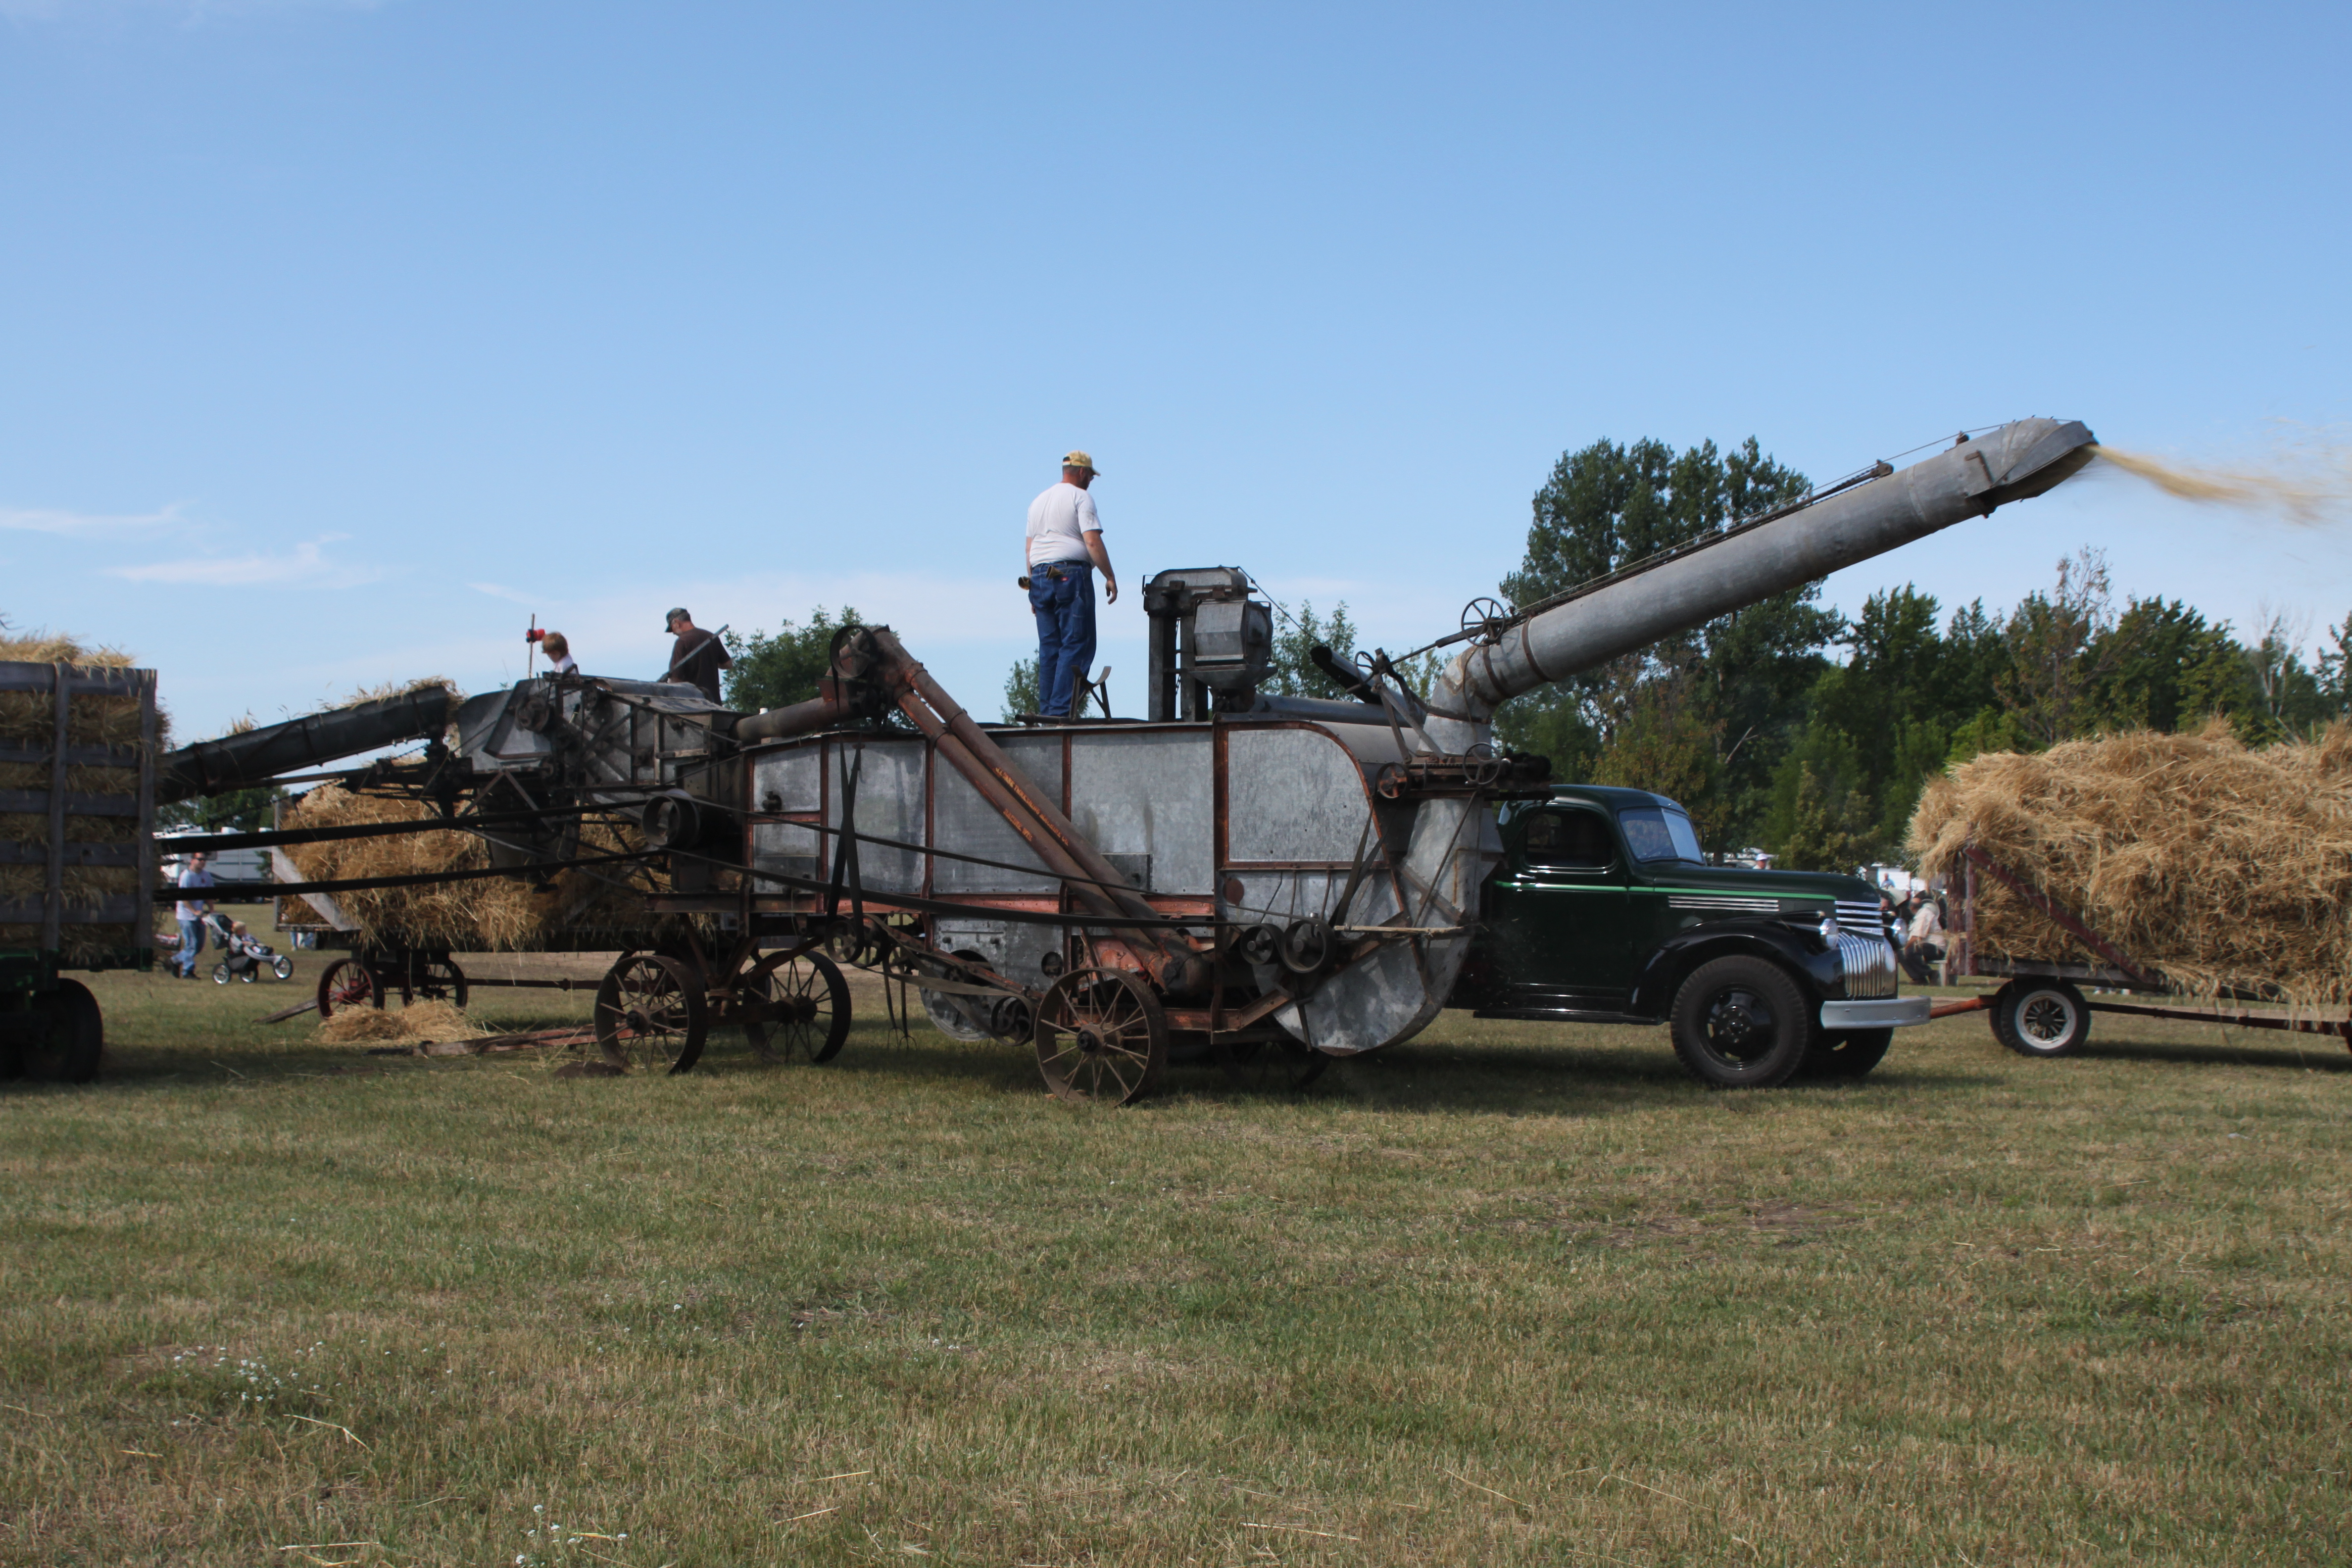 Local event will teach Missourians about their history in agriculture